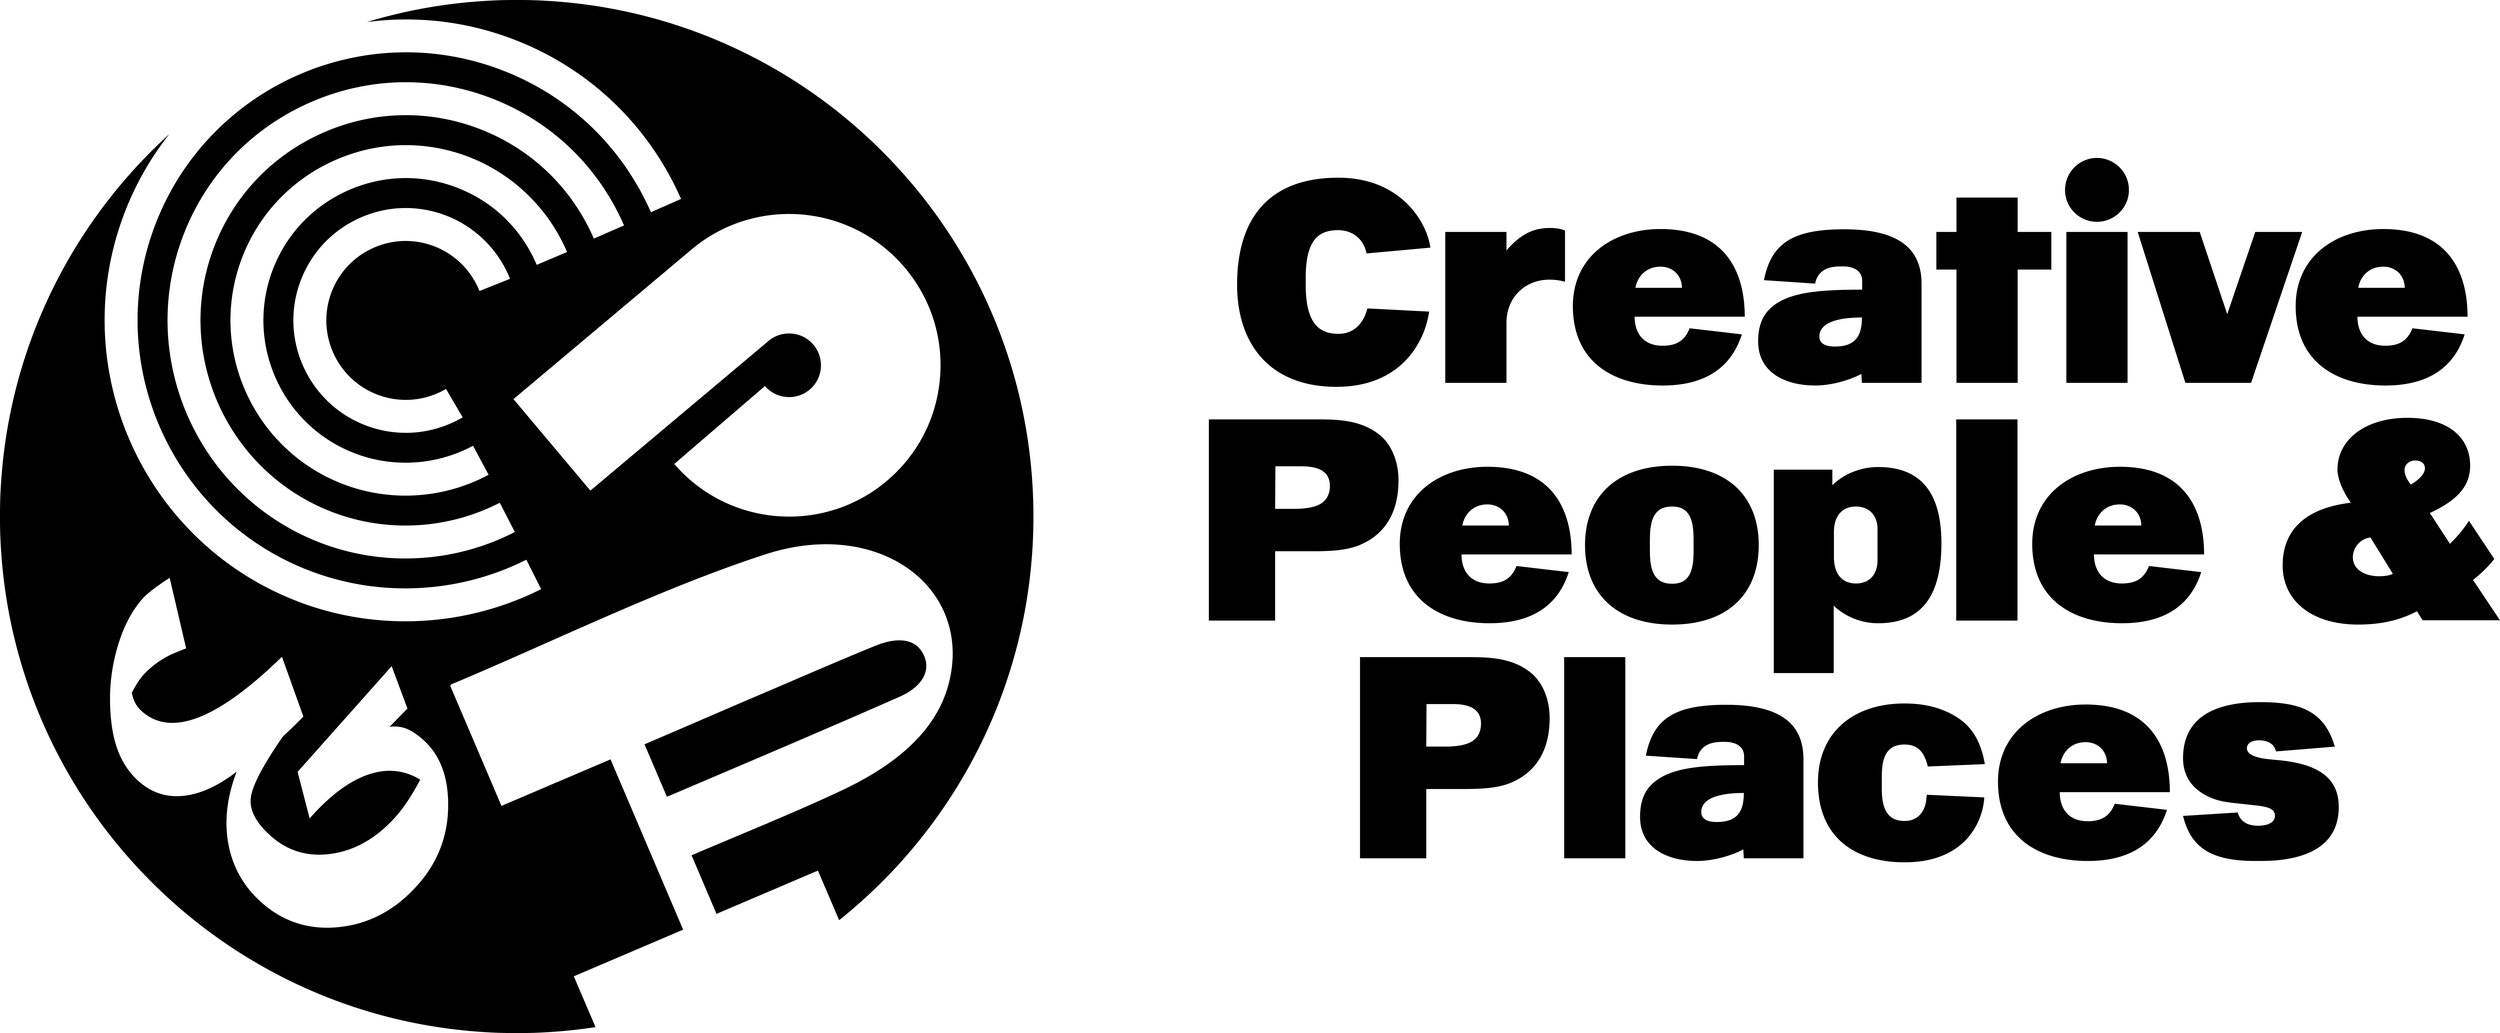 CPP-LOGO-BLACK-HORIZONTAL web.jpg